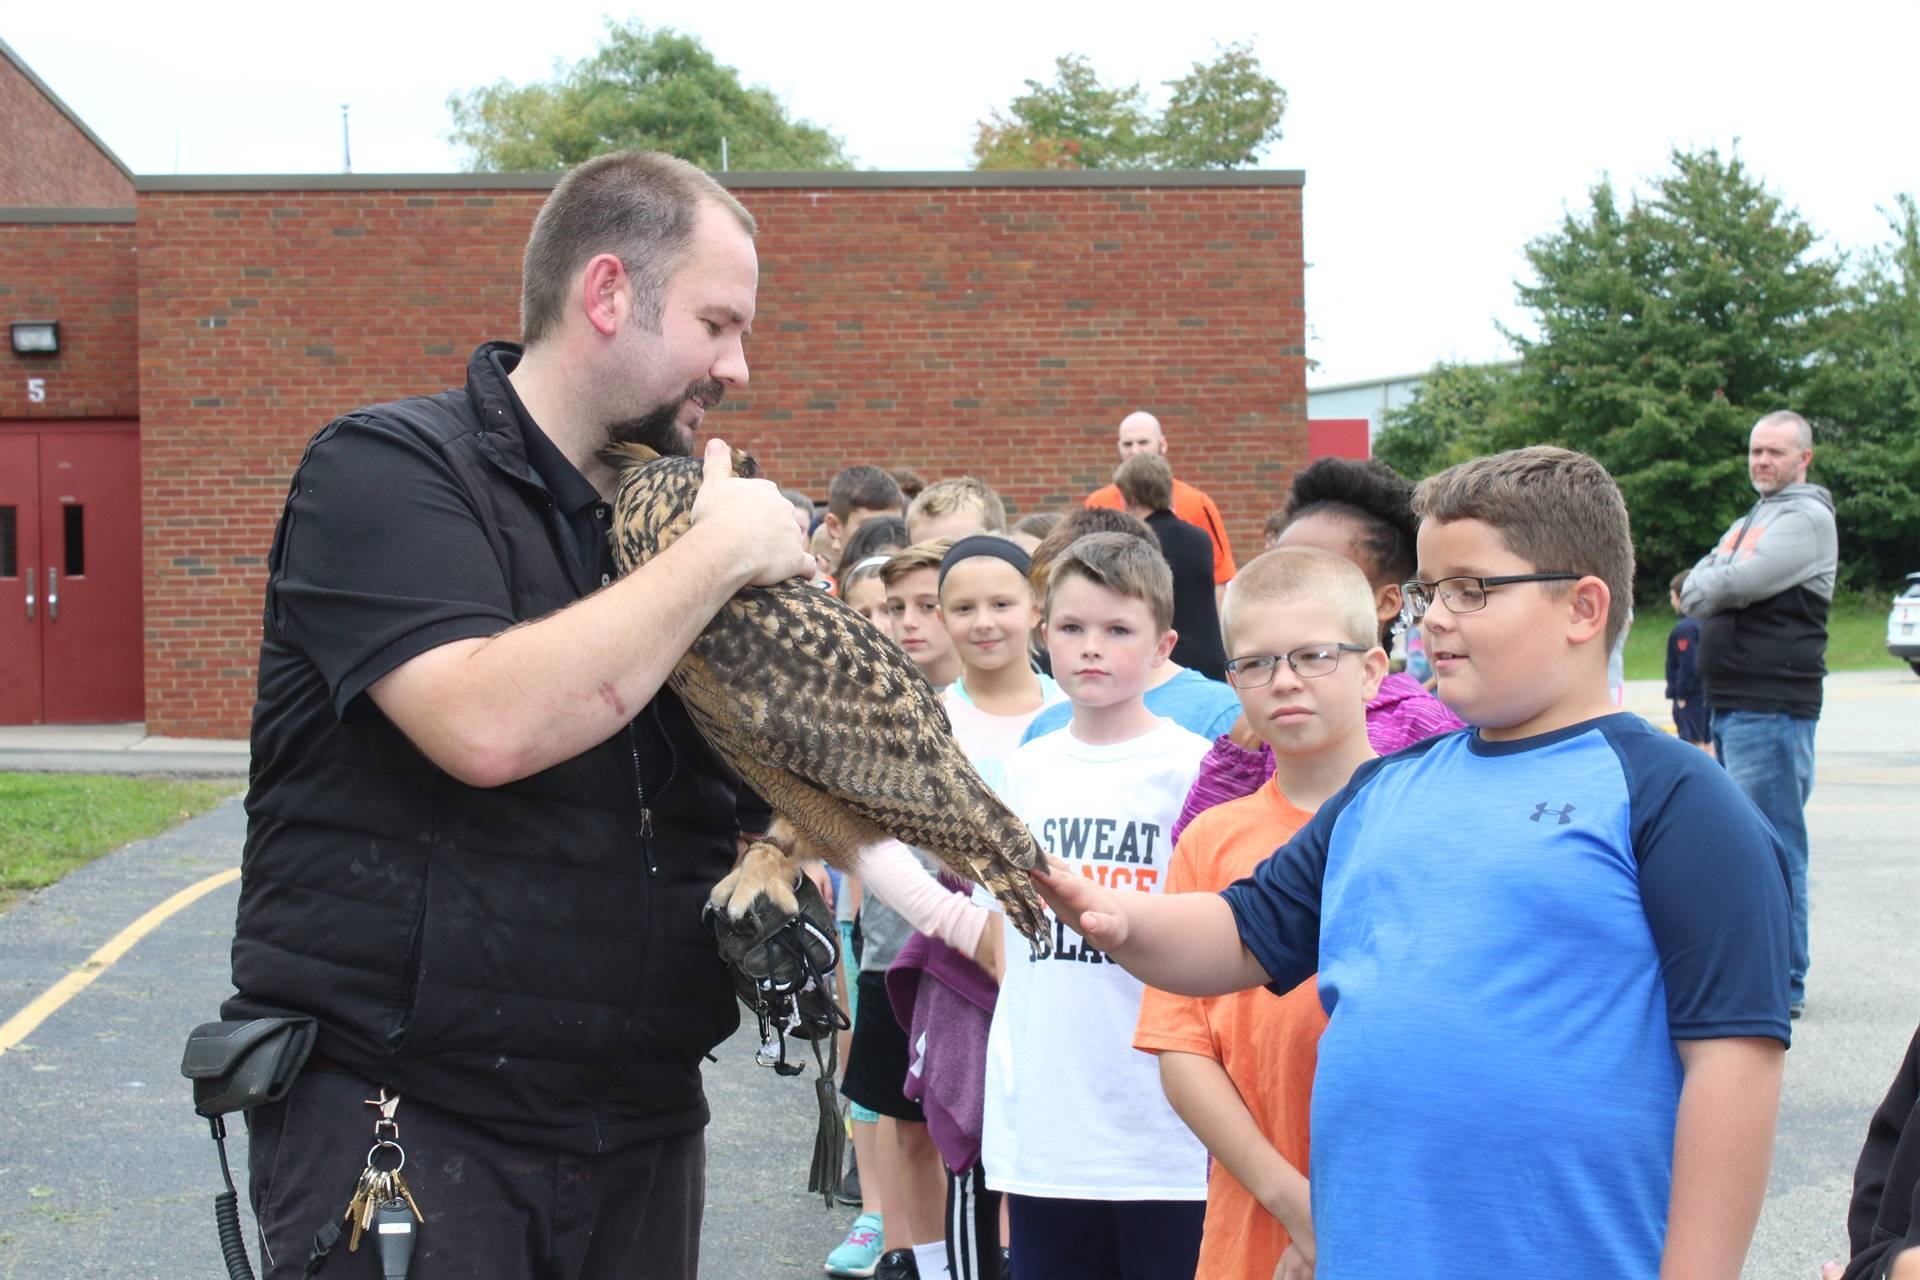 Student petting the owl